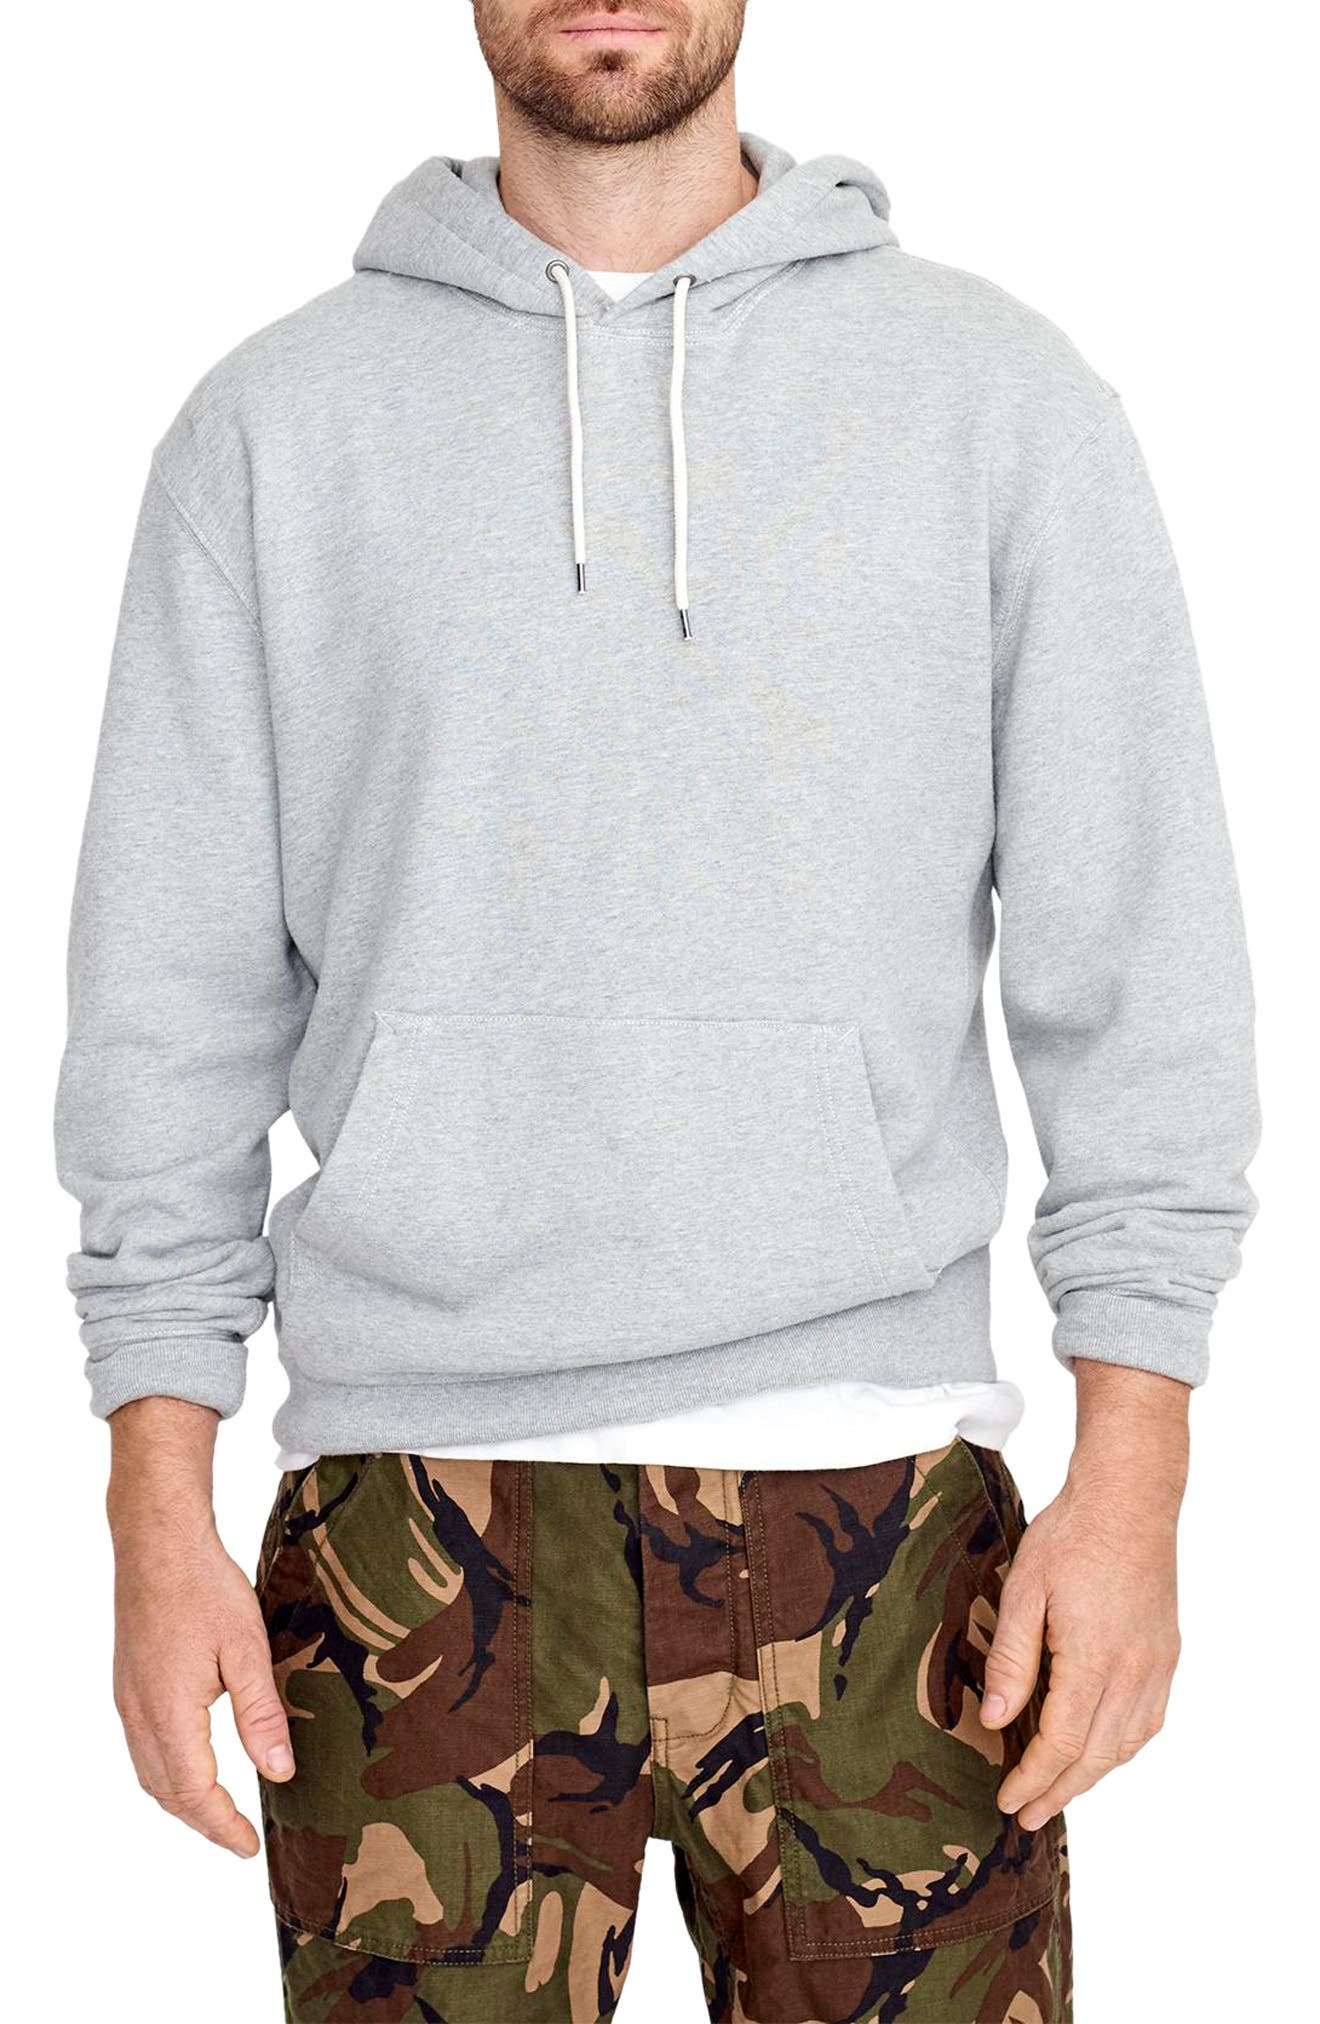 French Terry Pullover Hoodie,                             Main thumbnail 1, color,                             021